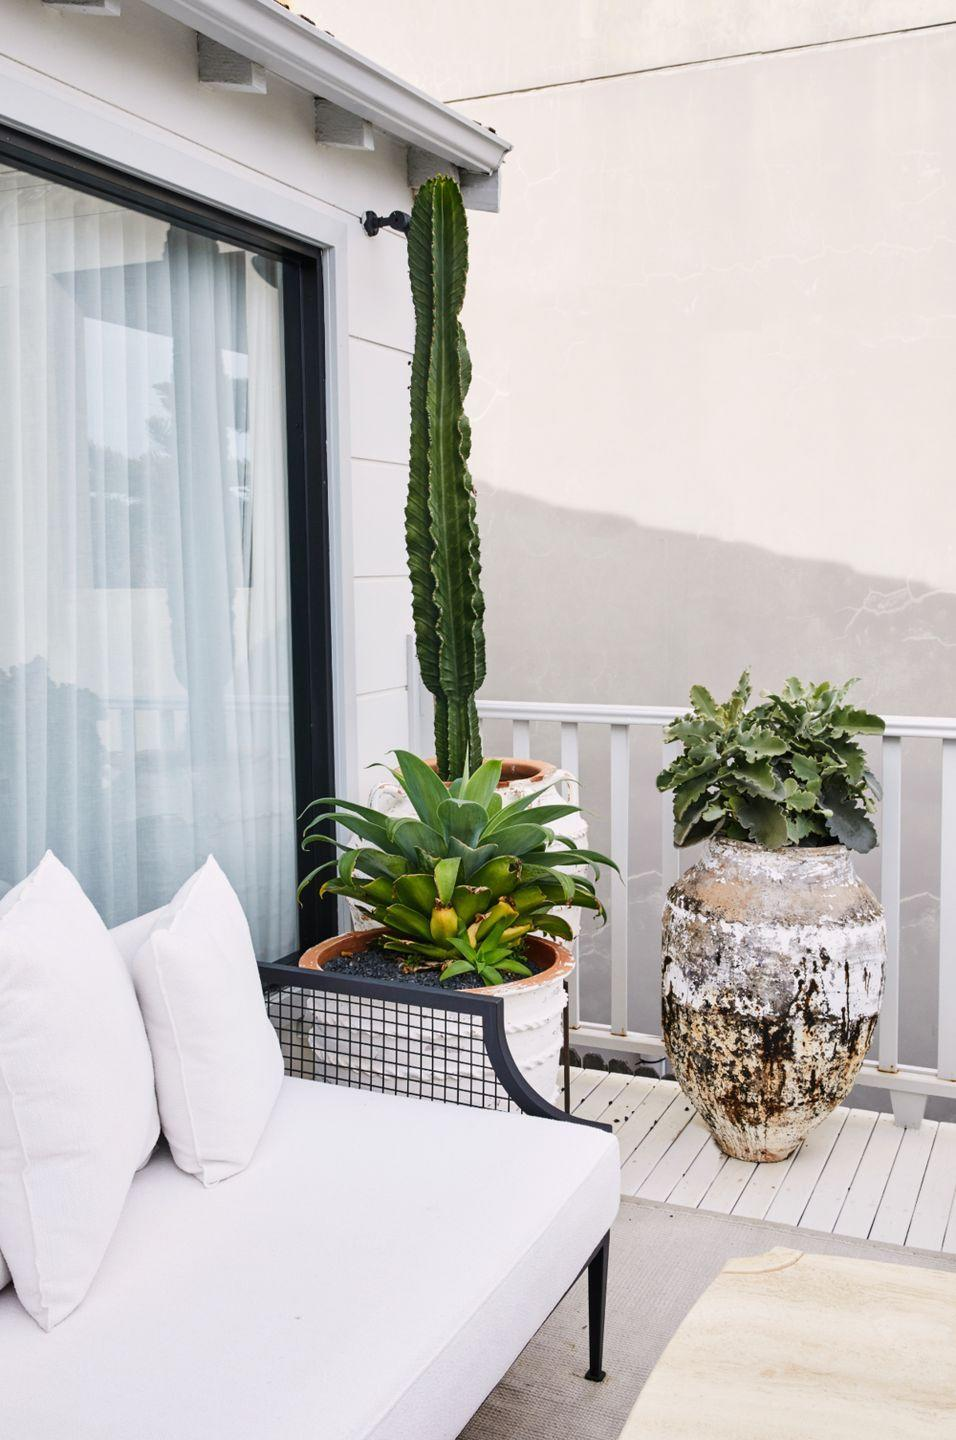 "<p>Add greenery with<a href=""https://www.housebeautiful.com/lifestyle/gardening/g31355906/easy-low-maintenance-plants/"" rel=""nofollow noopener"" target=""_blank"" data-ylk=""slk:low-maintenance plants,"" class=""link rapid-noclick-resp""> low-maintenance plants,</a> like cacti. Though this deck is small, interior designer Tamsin Johnson still added plenty of personality and color with rustic planters and tall plants that take advantage of the vertical space. </p>"